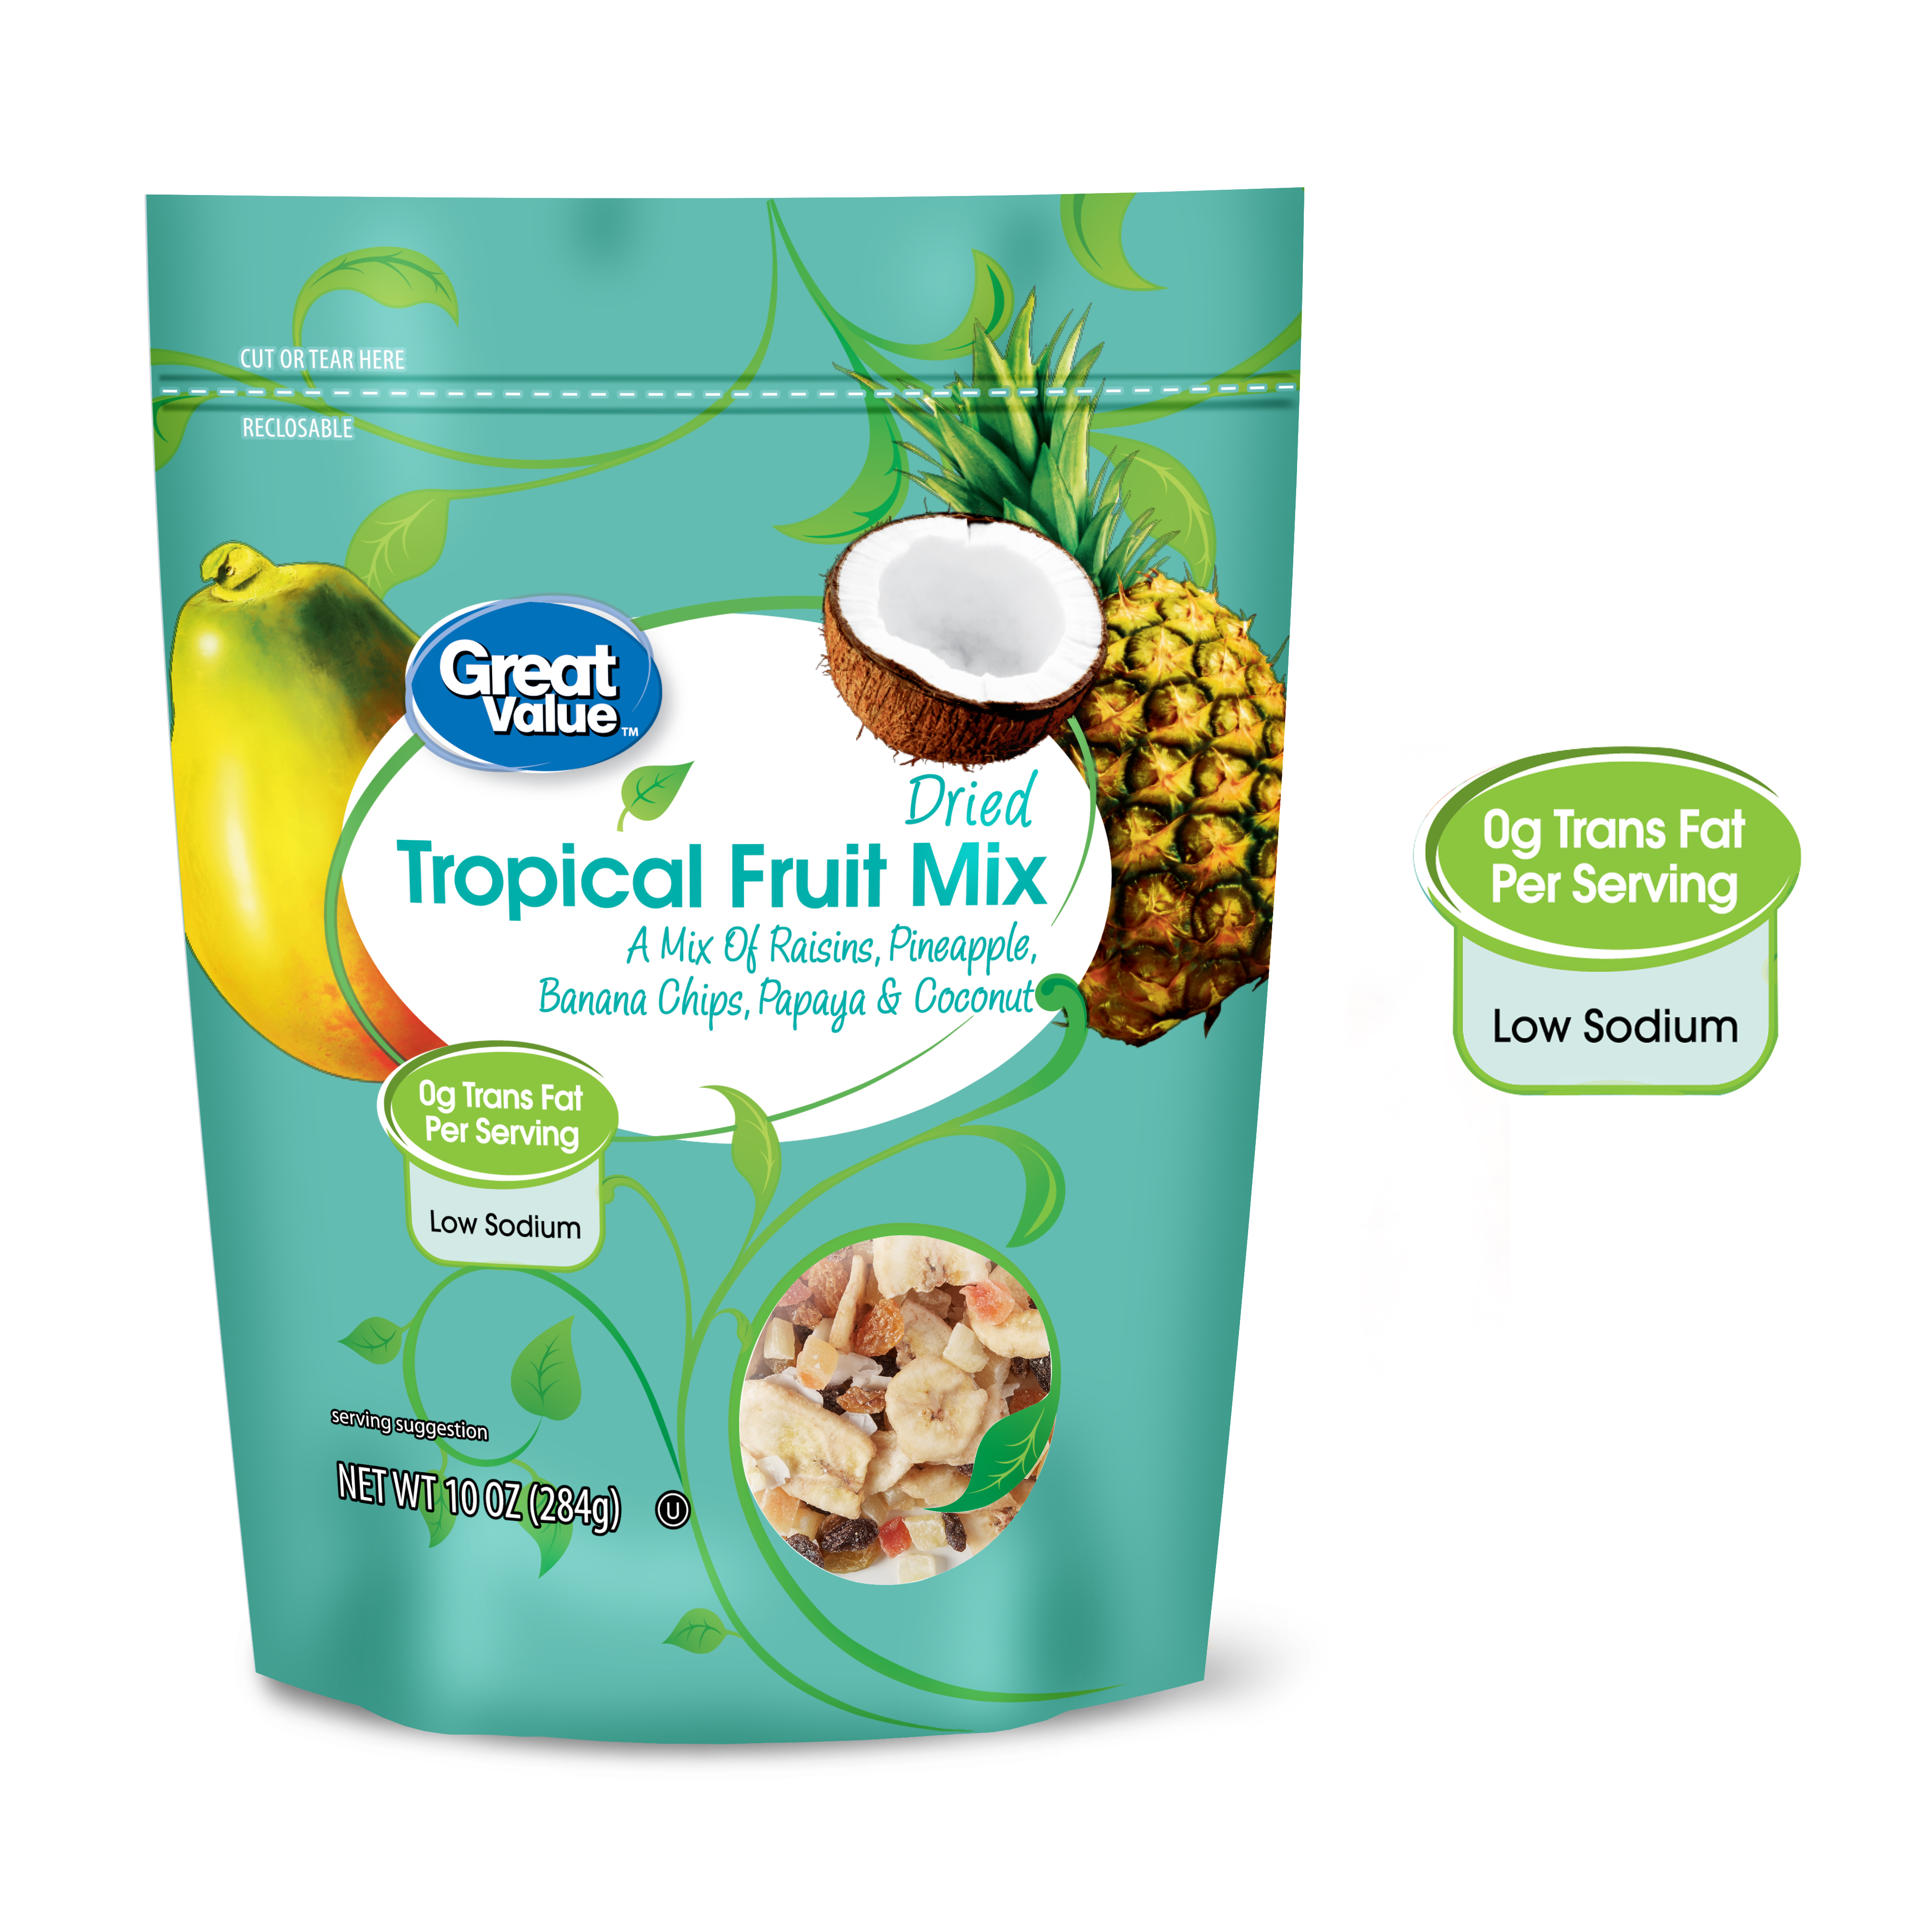 Great Value Dried Tropical Fruit Mix, 10 Oz.